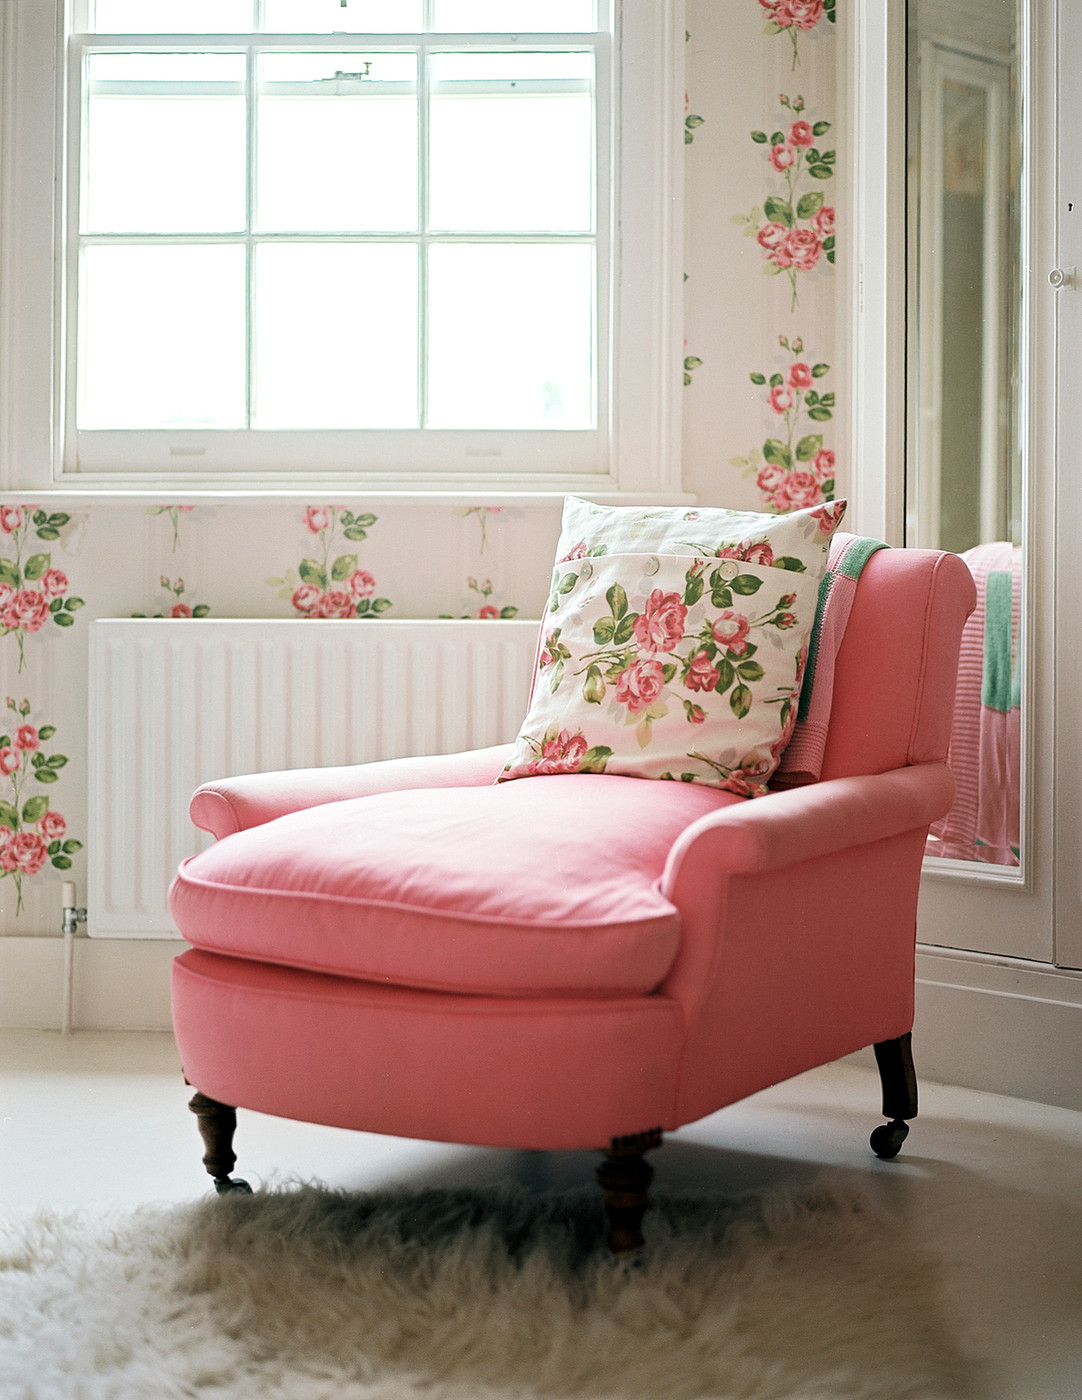 Pink Armchair Photos, Design, Ideas, Remodel, and Decor ...